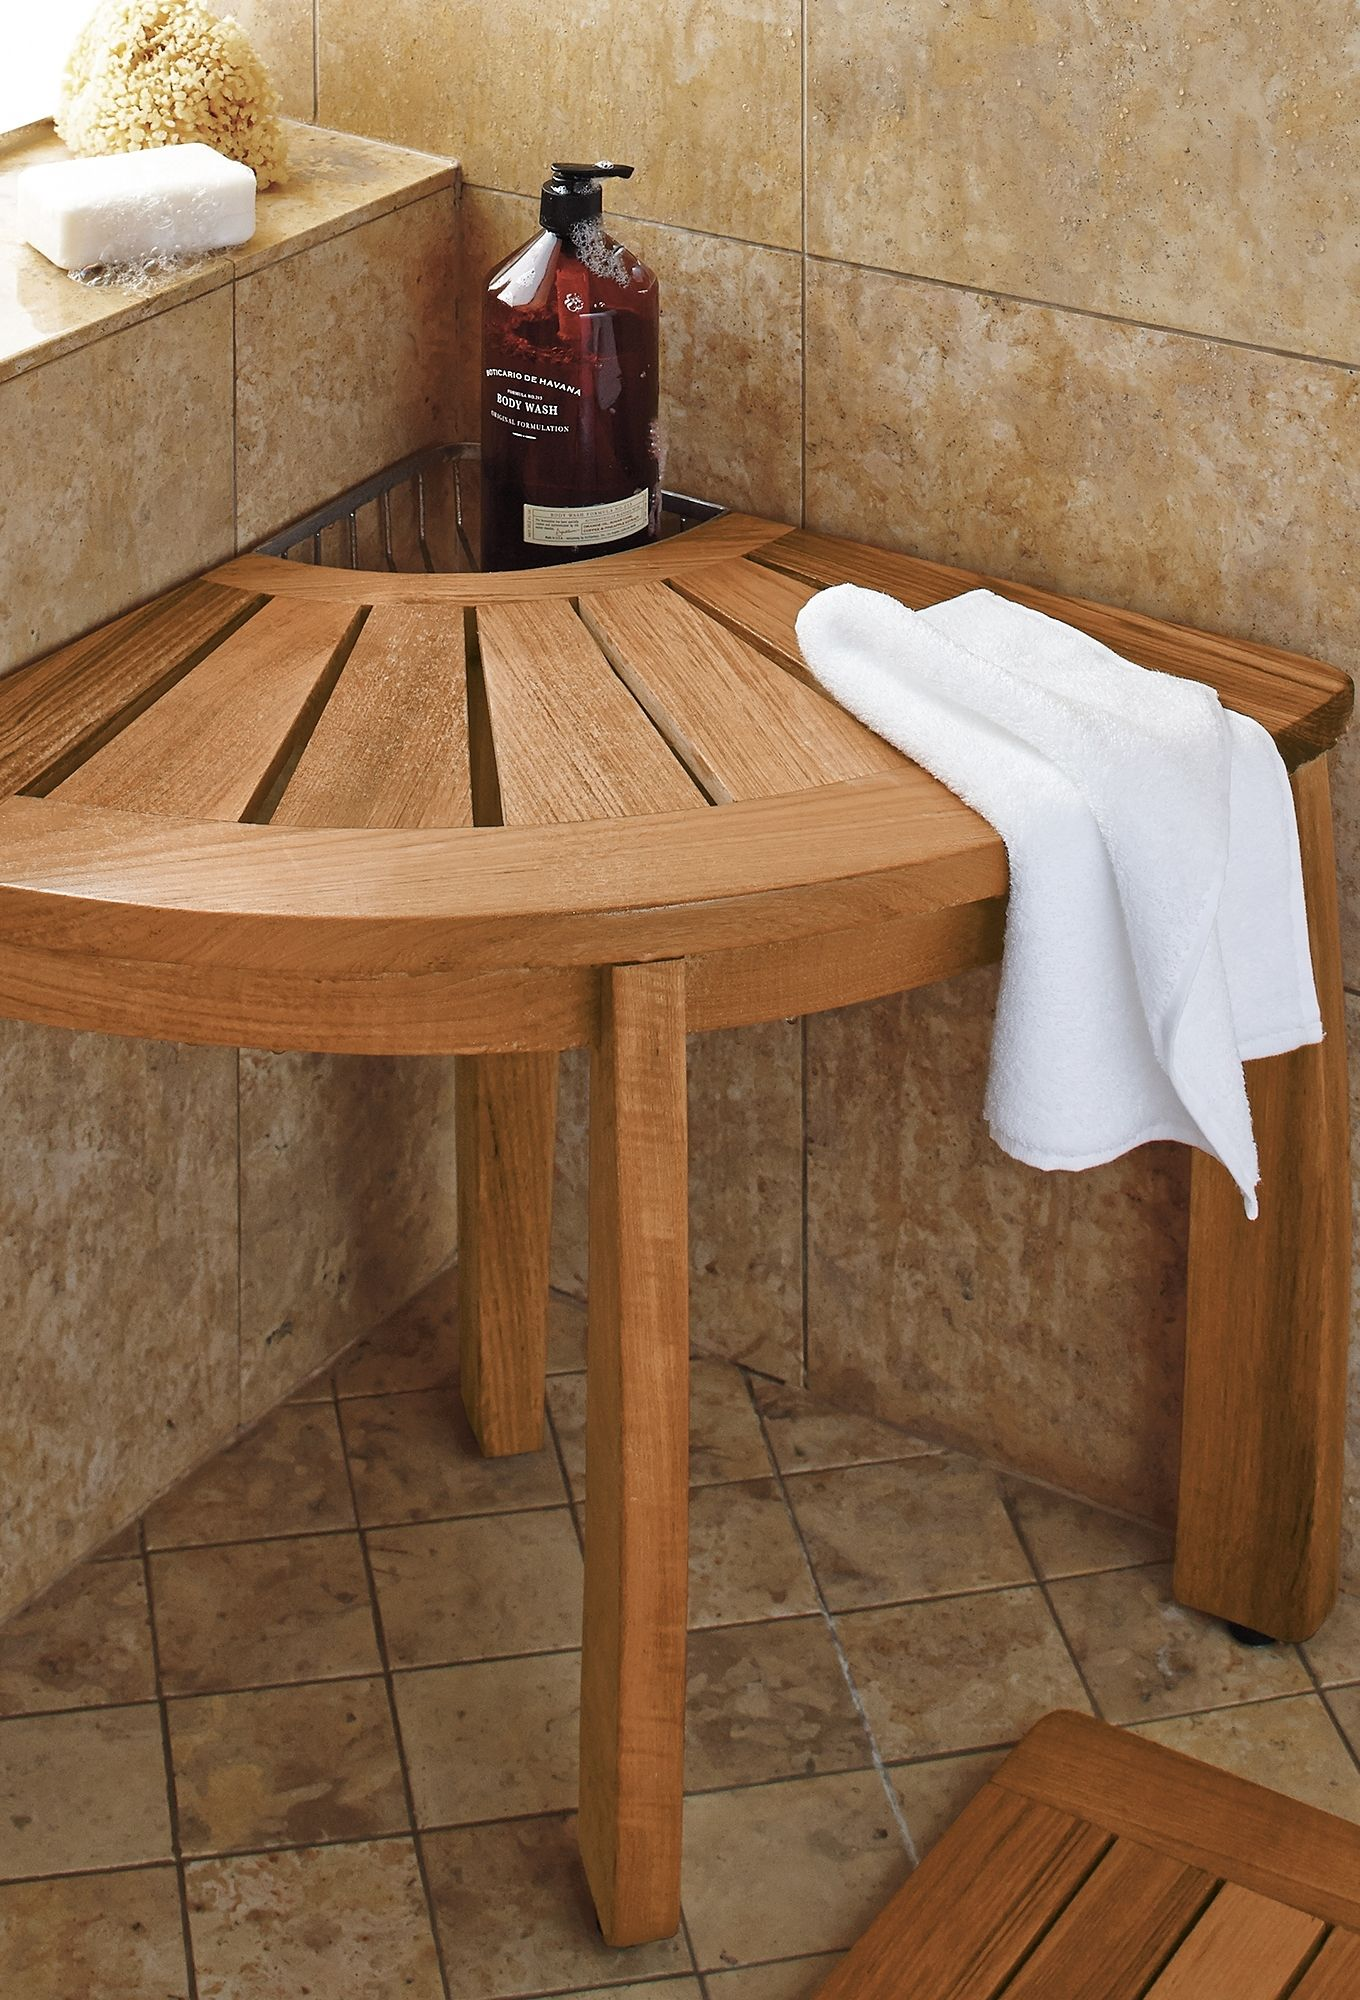 Spa Teak Corner Shower Seat with Basket | Shower seat, Teak and Corner